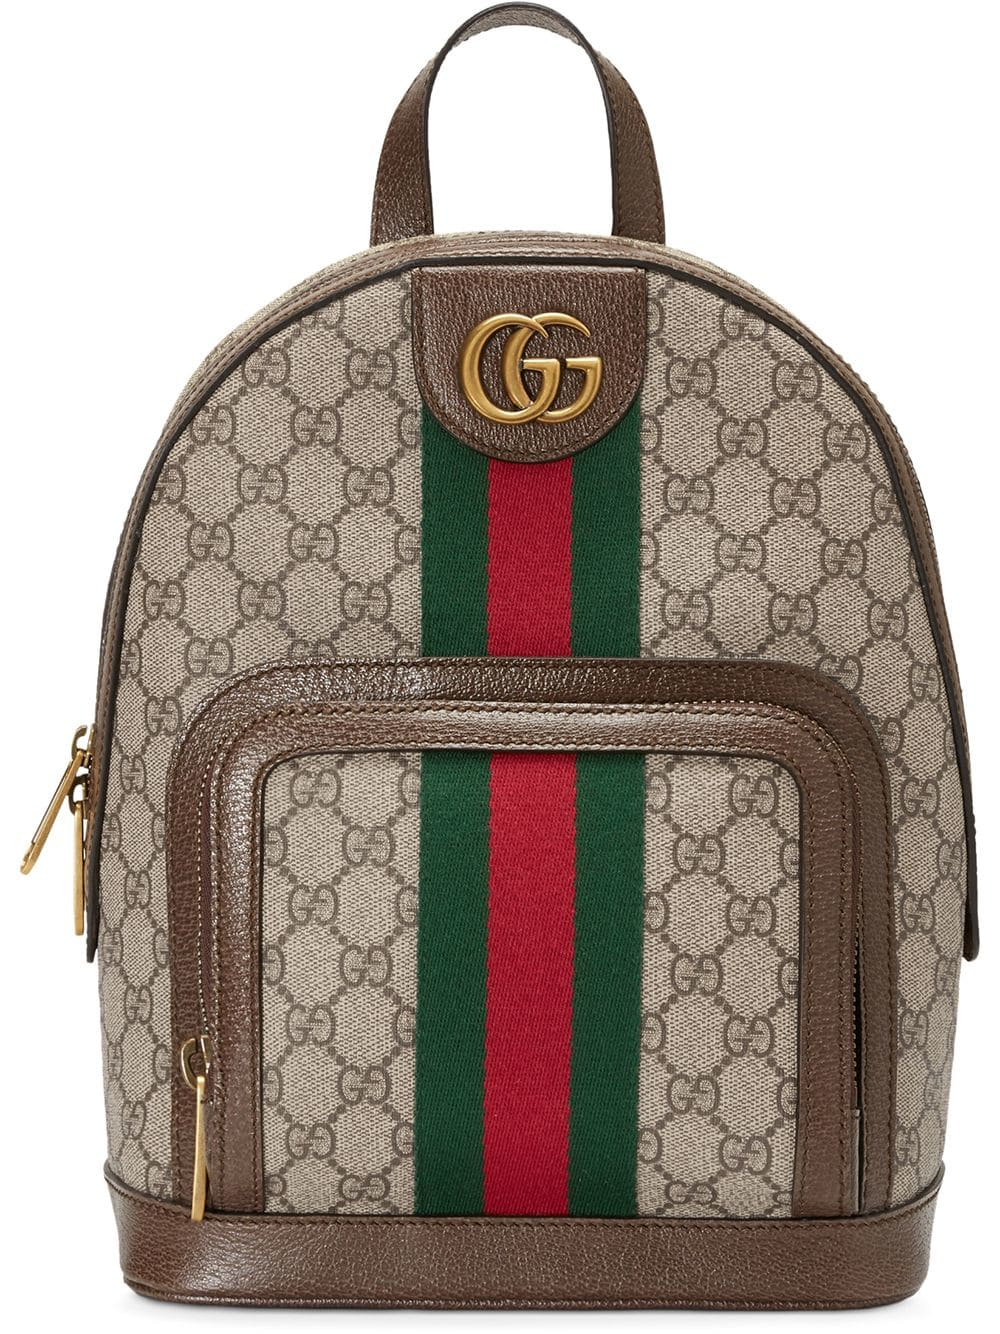 GUCCI GUCCI OPHIDIA GG SMALL BACKPACK - BROWN.  gucci  bags  backpacks bb8b8638601ce